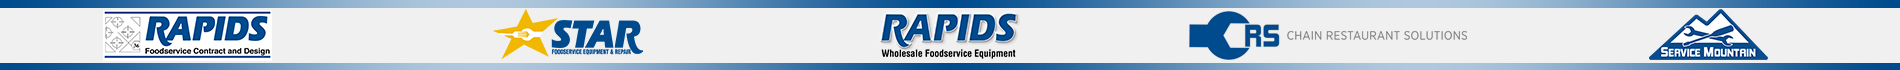 Rapids Family of Foodservice Companies